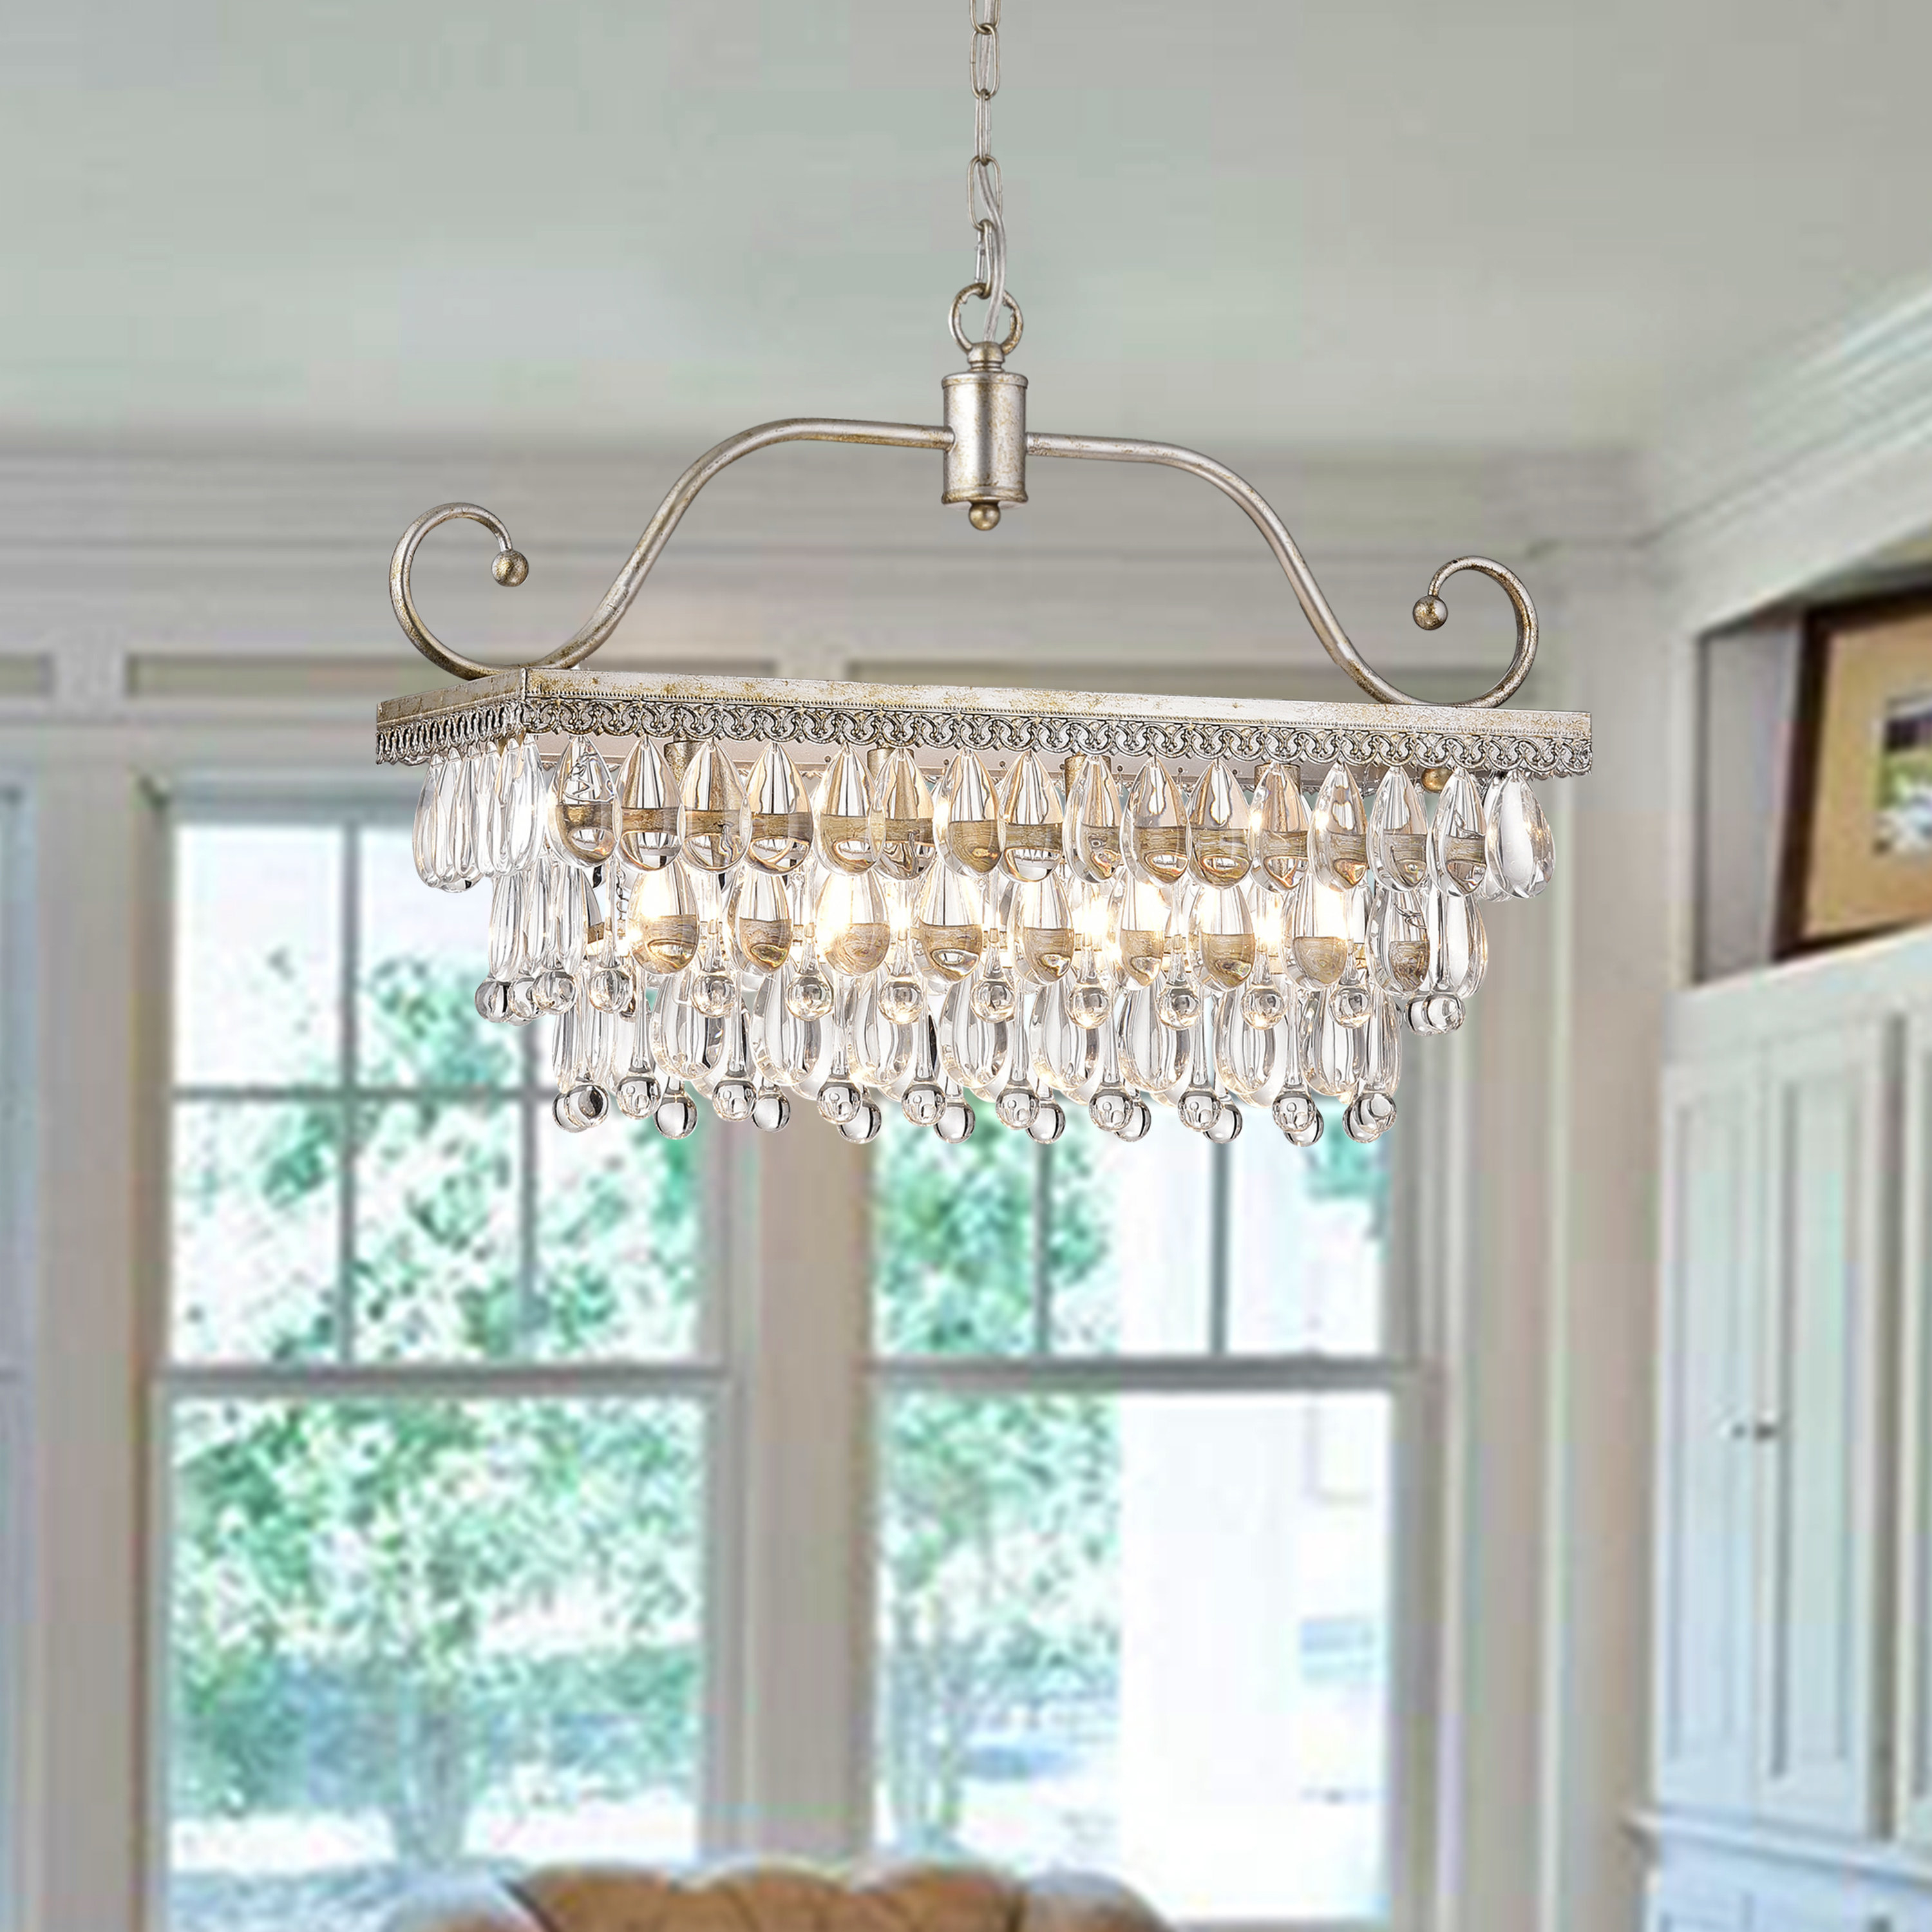 Fashionable Gerhart 4 Light Crystal Chandelier Throughout Dailey 4 Light Drum Chandeliers (Gallery 15 of 20)